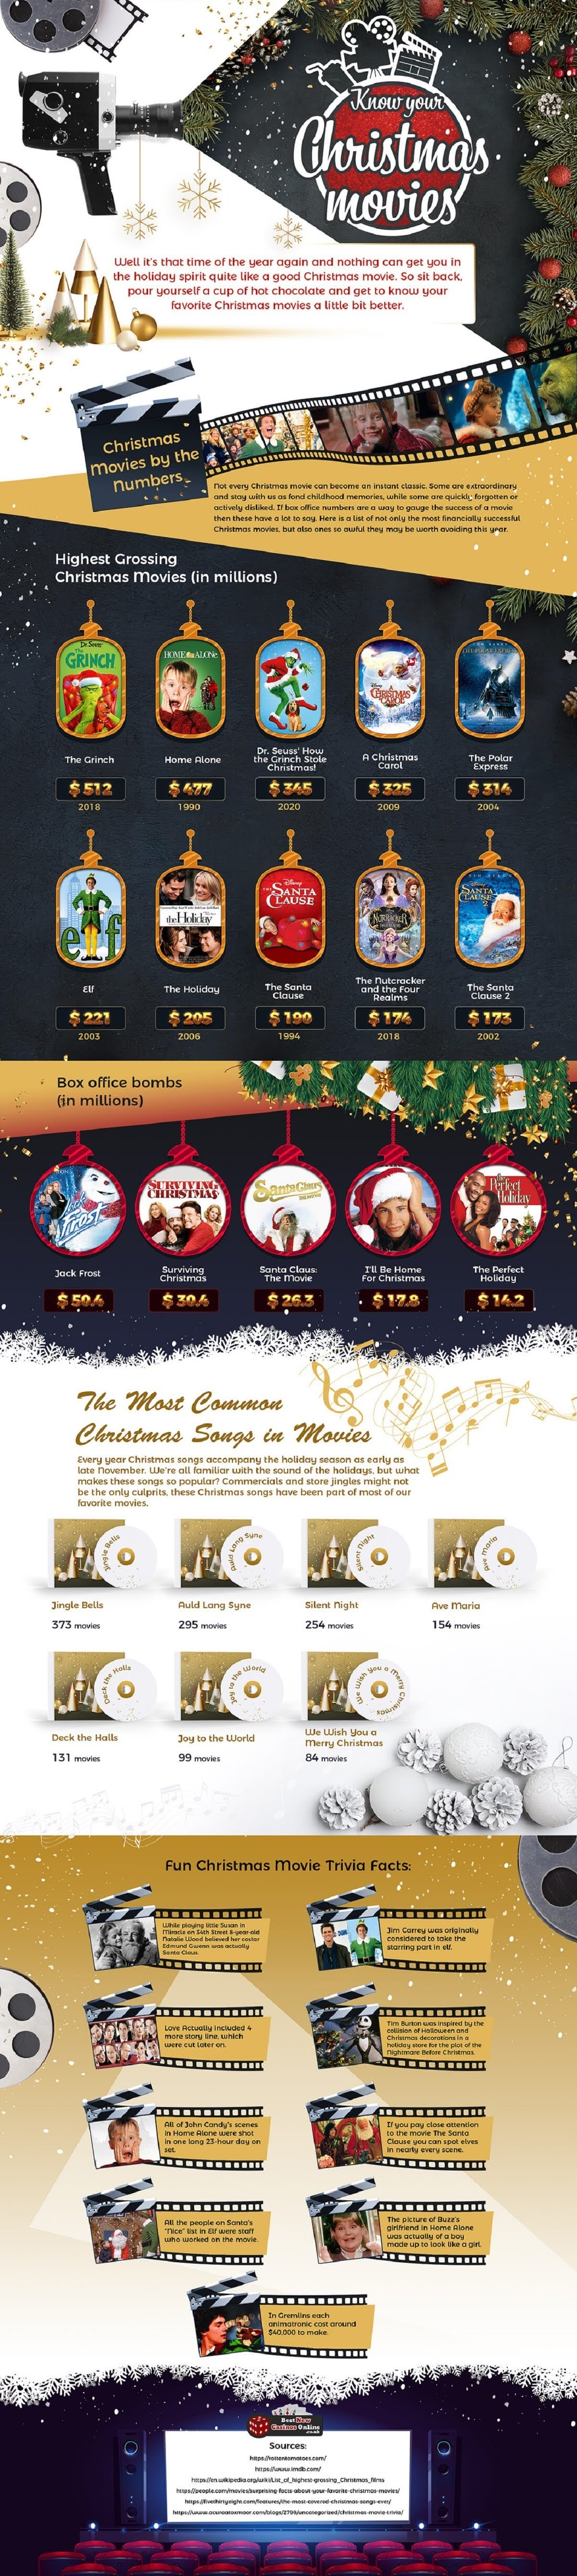 Get to Know Your Favourite Christmas Movies #infographic